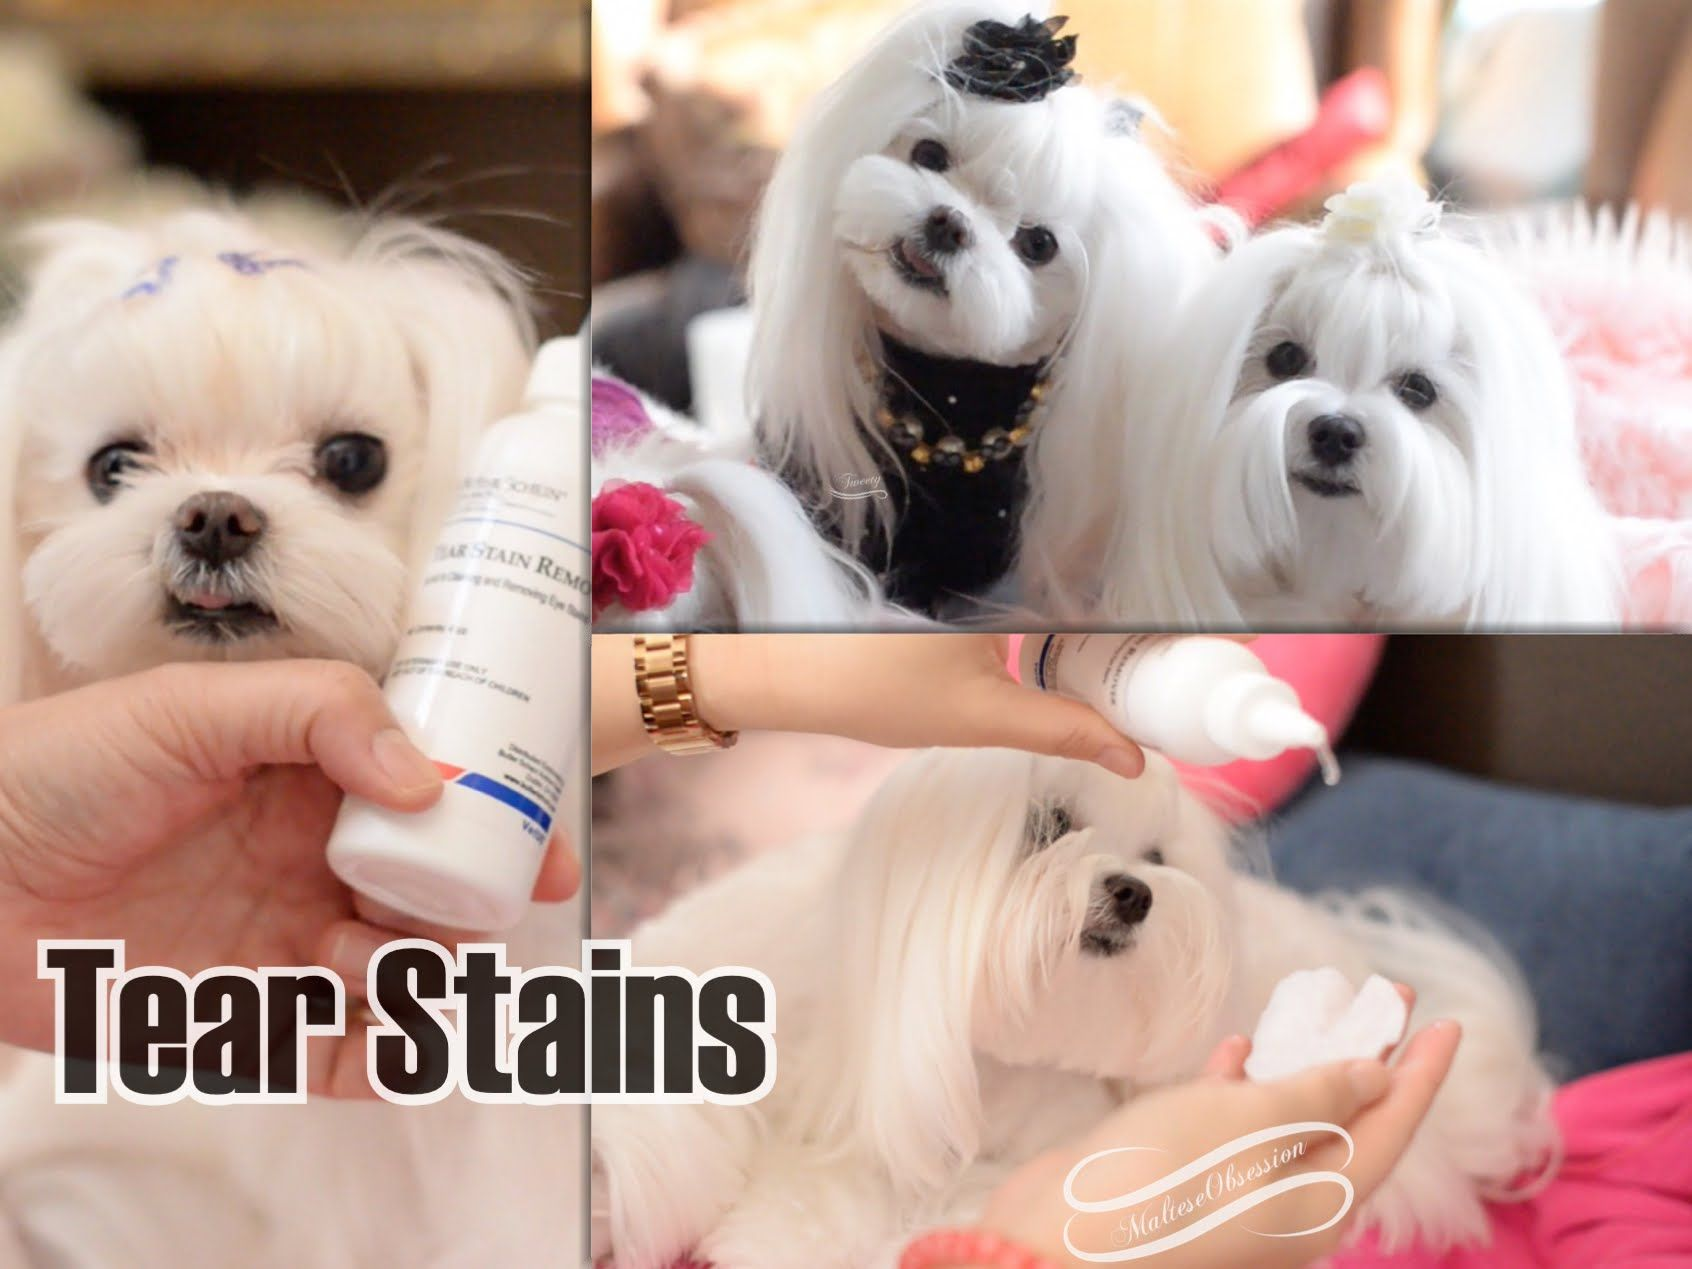 Maltese Grooming Clean Tear Stains With Butler Schein Tear Stain Cleaning Solution Dog Tear Stains Teacup Puppies Maltese Tear Stains